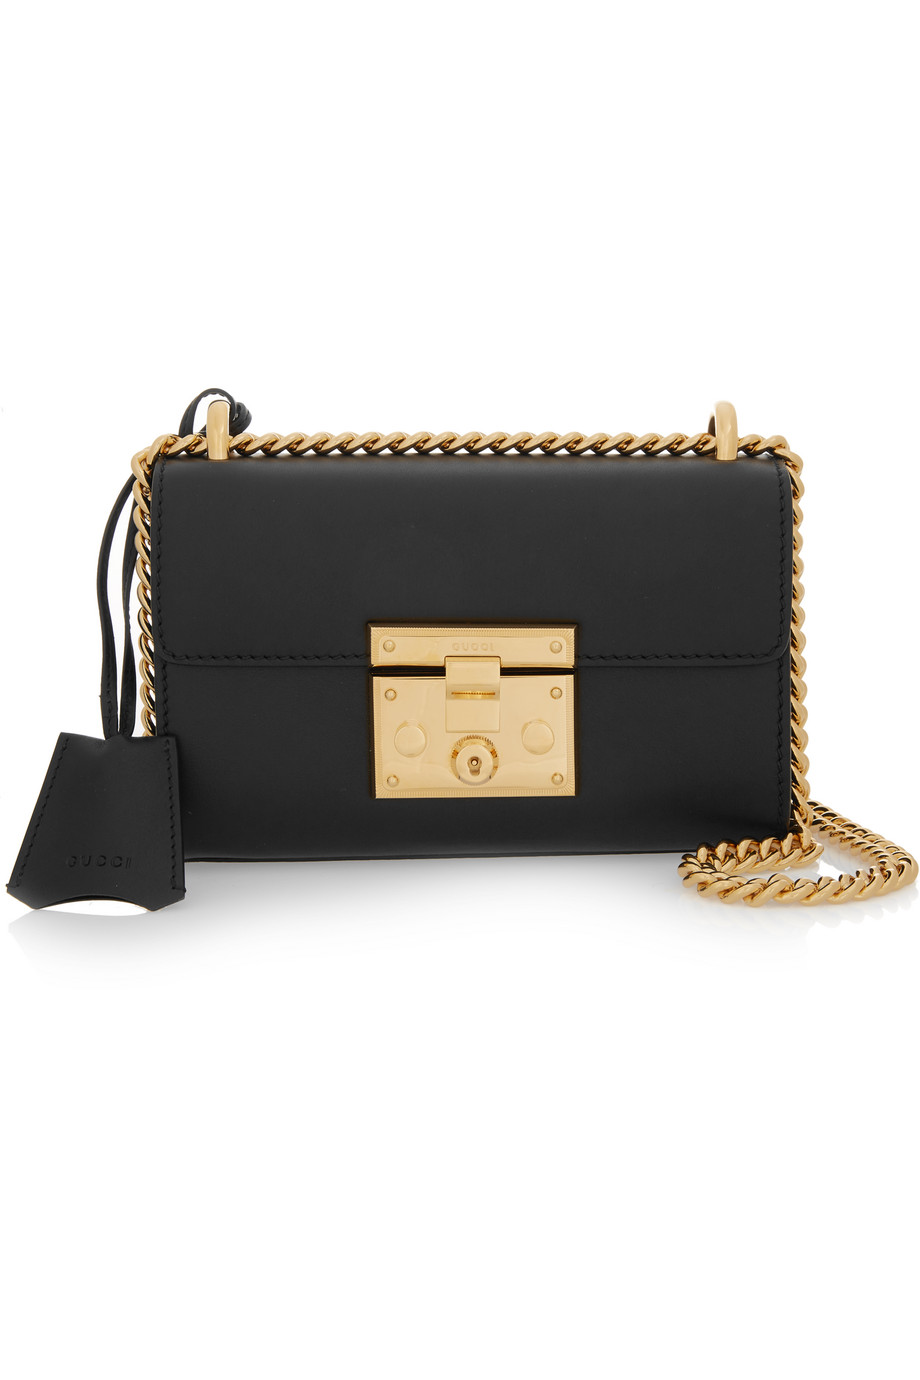 Gucci Padlock Small Leather Shoulder Bag, Black, Women's